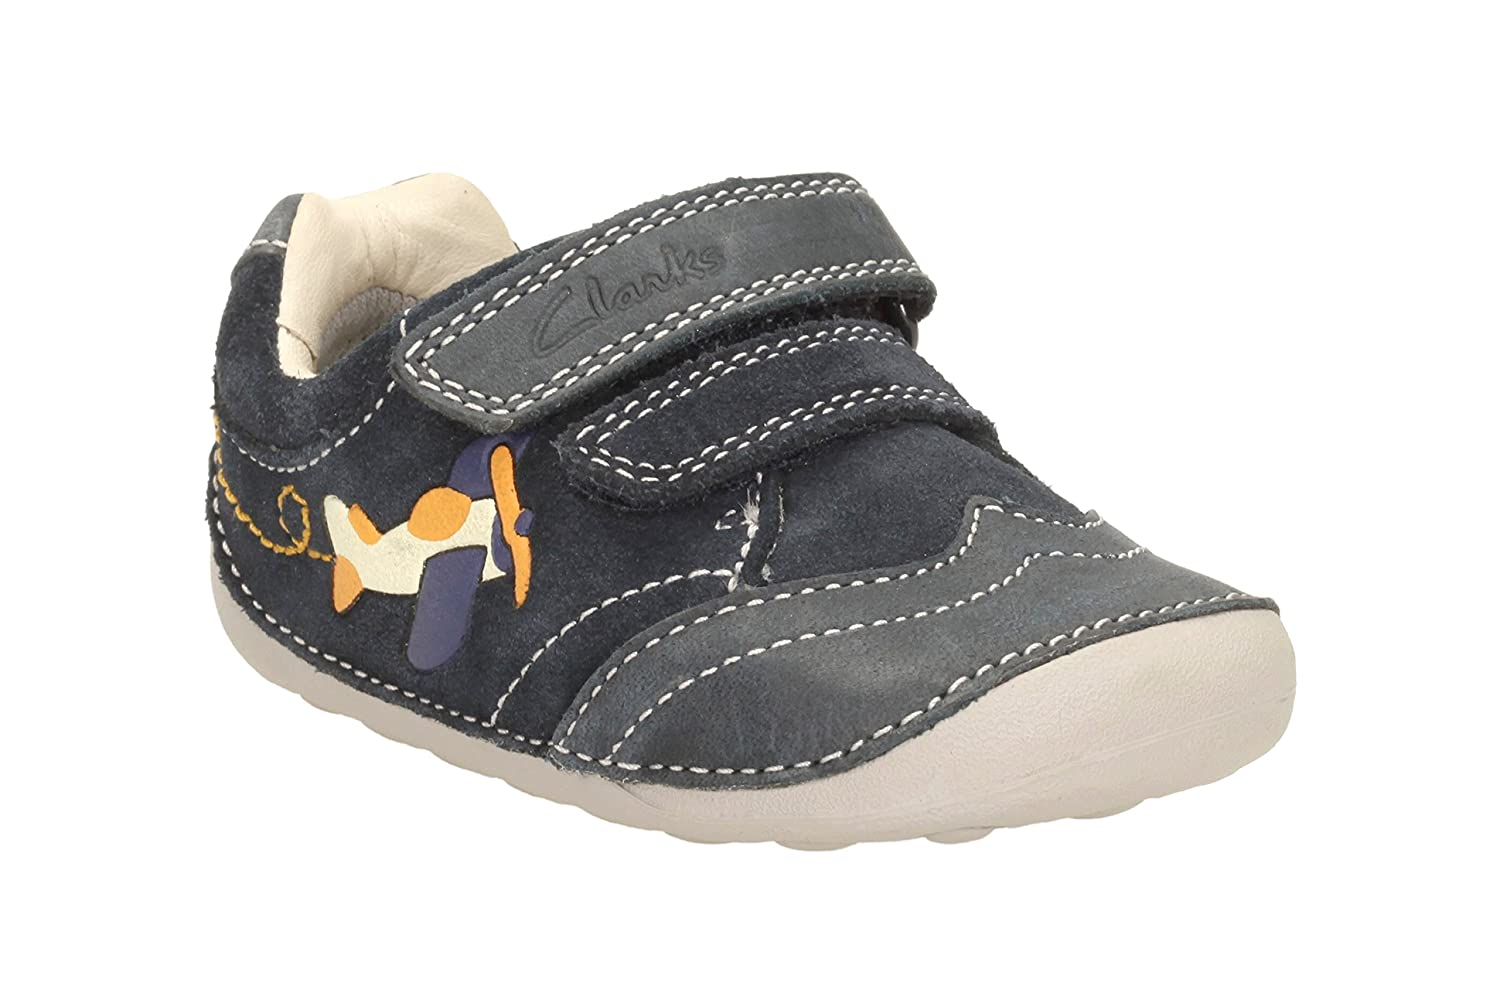 buy clarks baby shoes